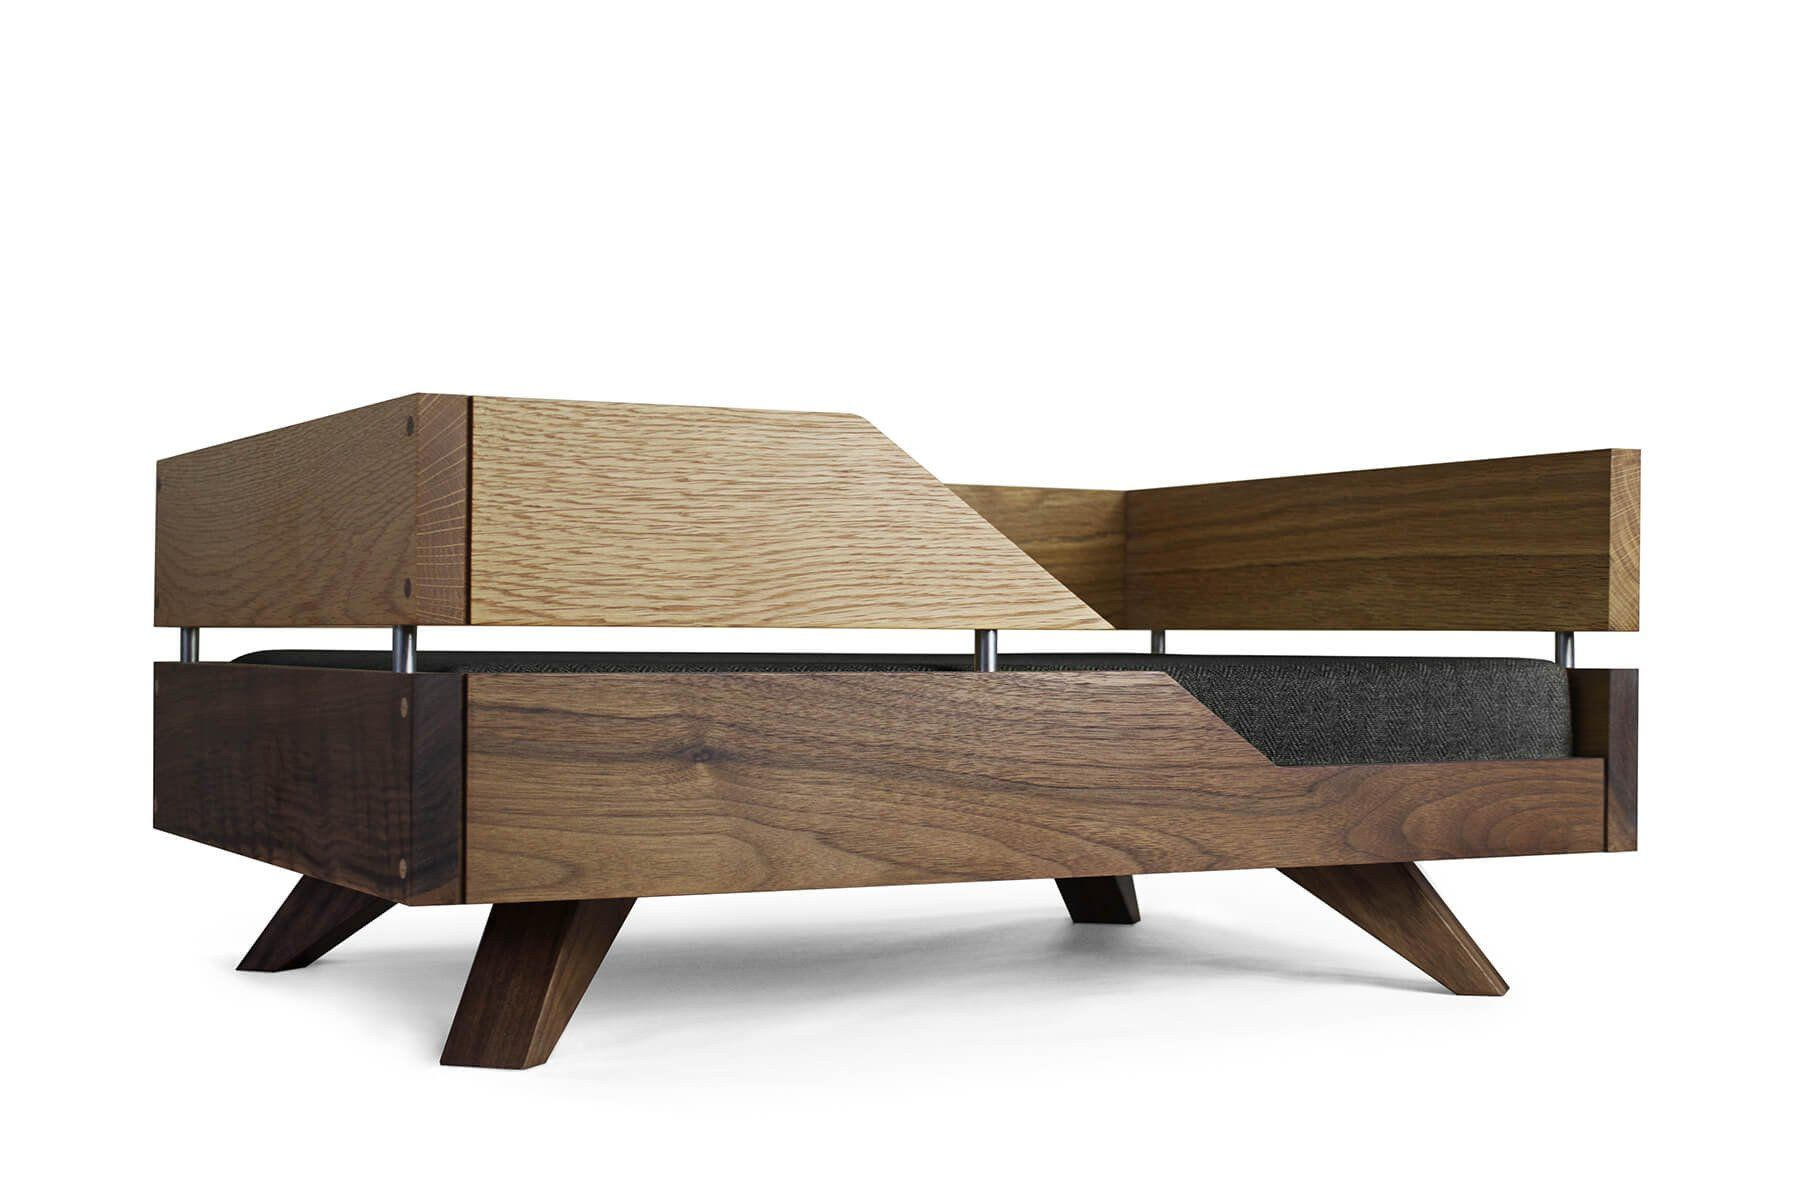 contemporary wooden dog beds handmade from solid oak walnut or a  - contemporary wooden dog beds handmade from solid oak walnut or acombination of both with